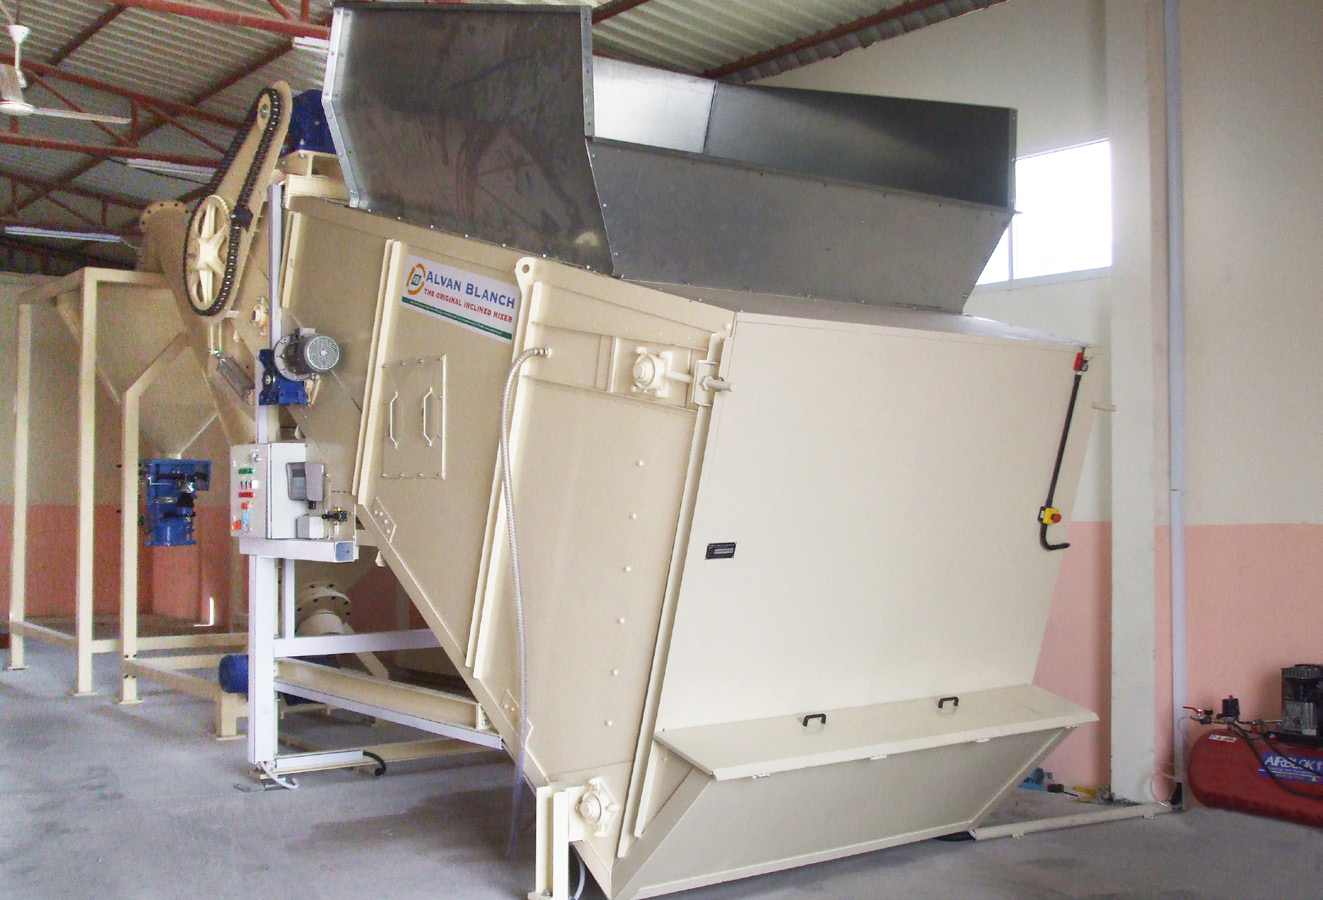 Alvan Blanch Blending System for Animal Feed UAE Page 1 Image 0001